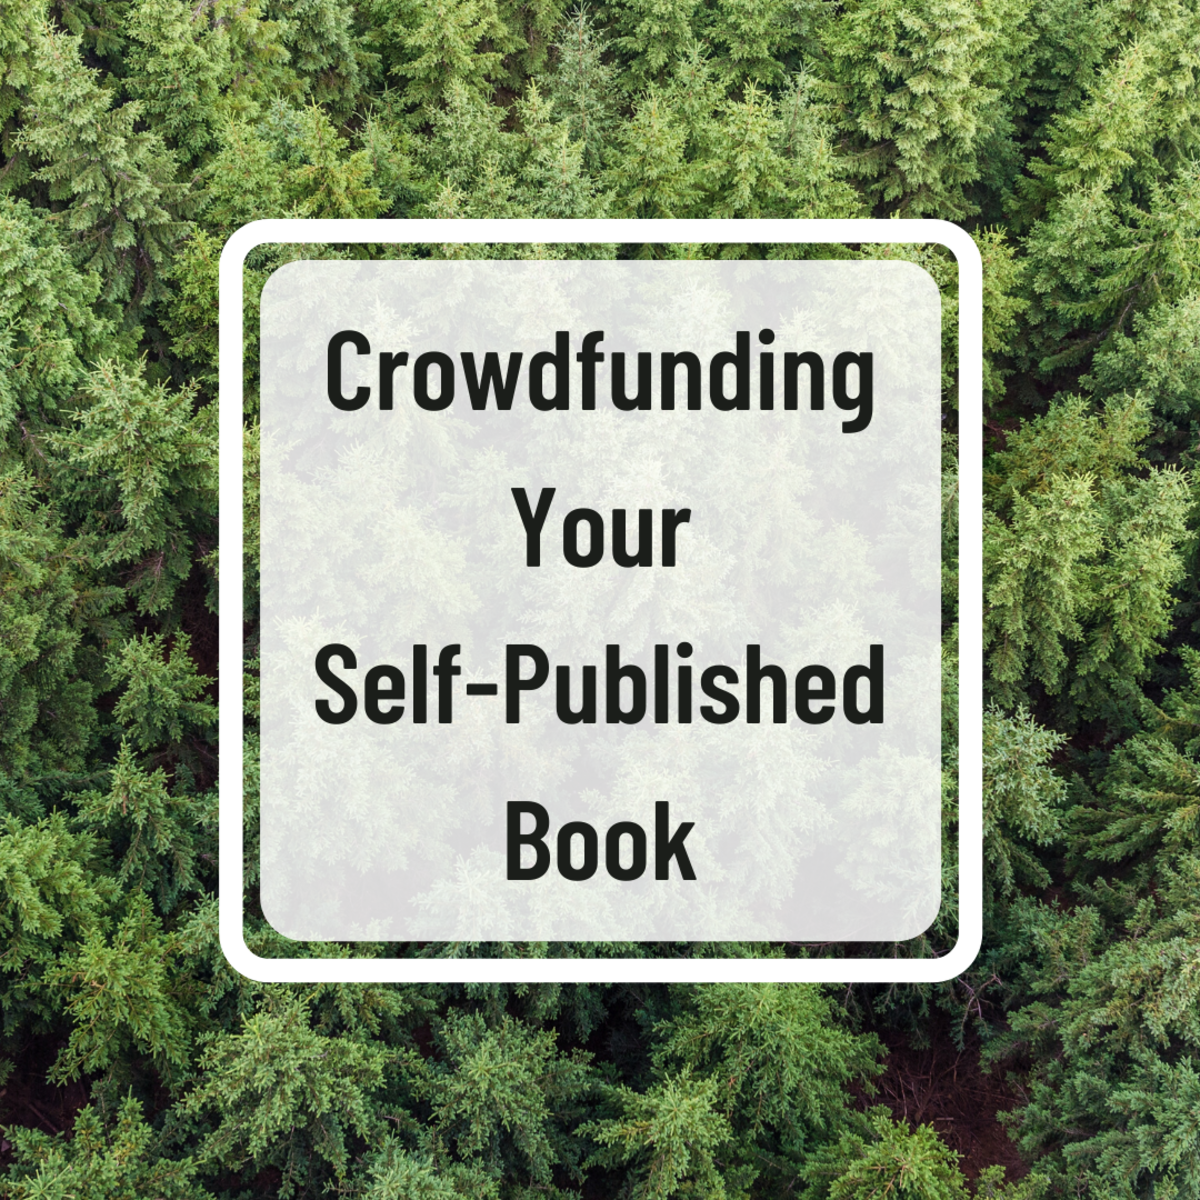 Is crowdfunding a viable means of raising money to self-publish your book?